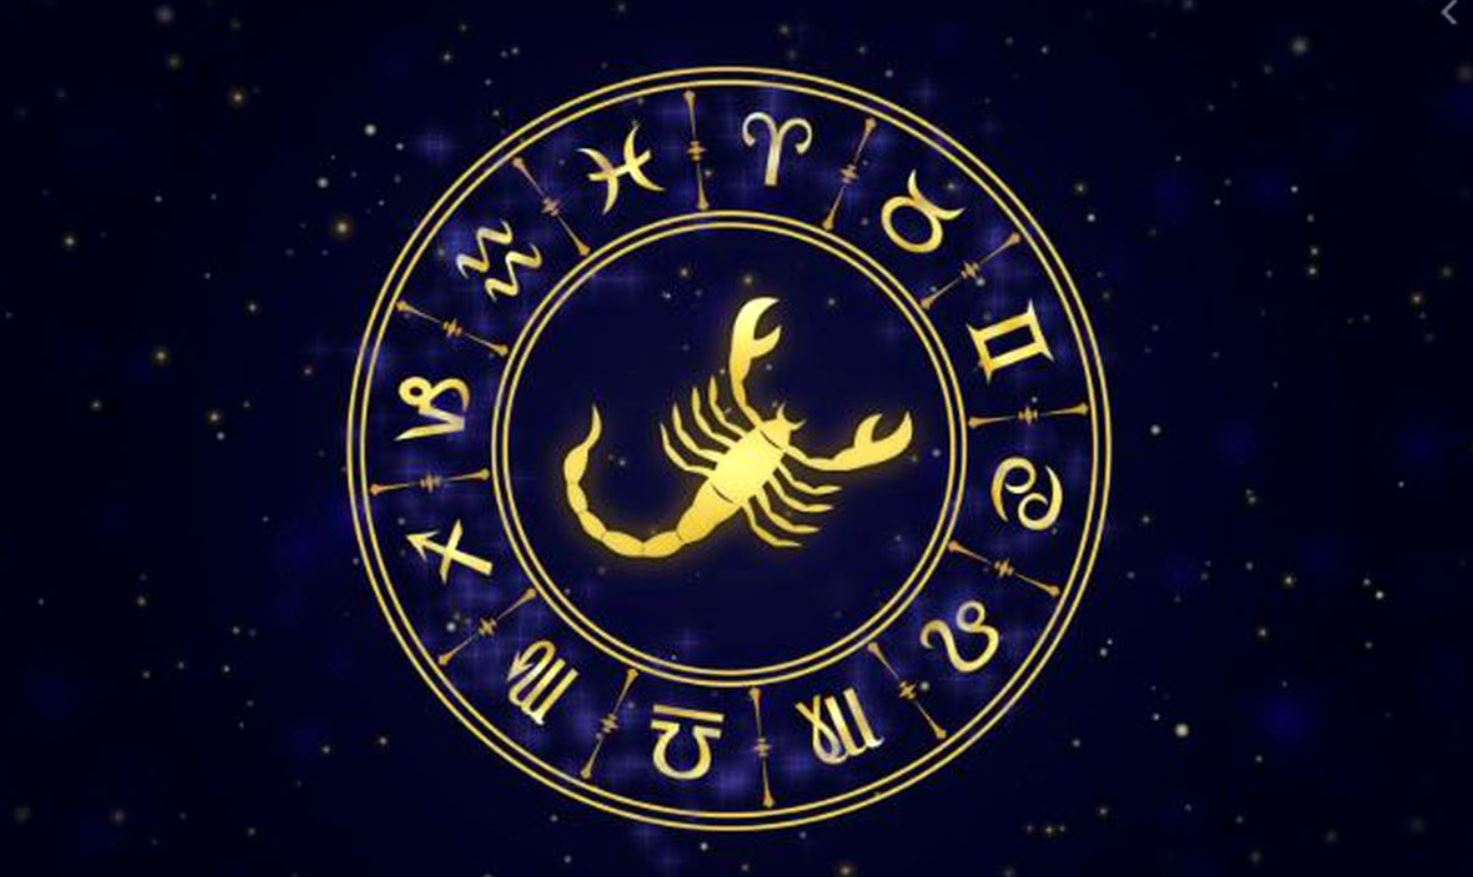 Scorpio horoscope 2020